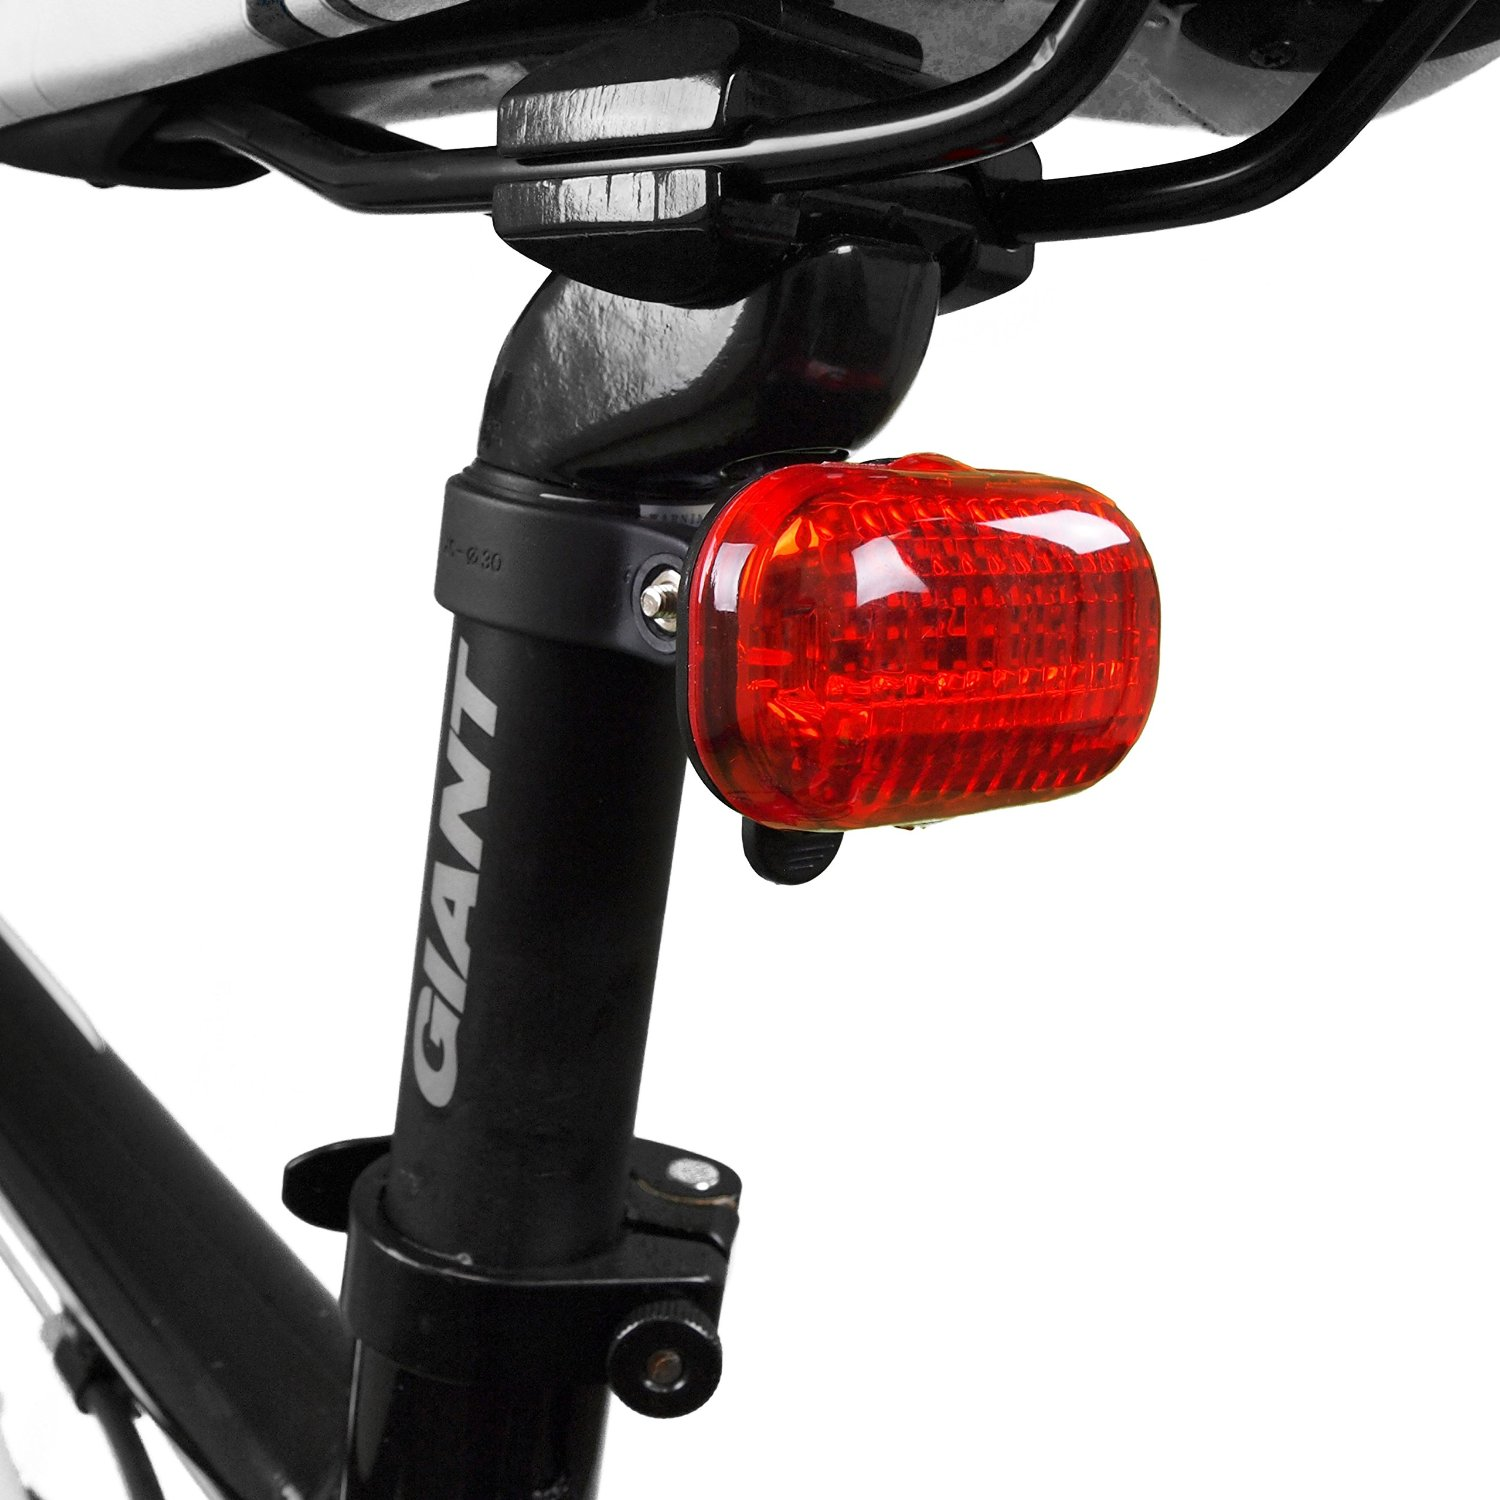 BV Bicycle Light Set Super Bright 5 LED Headlight Quick-Releas 3 LED Taillight